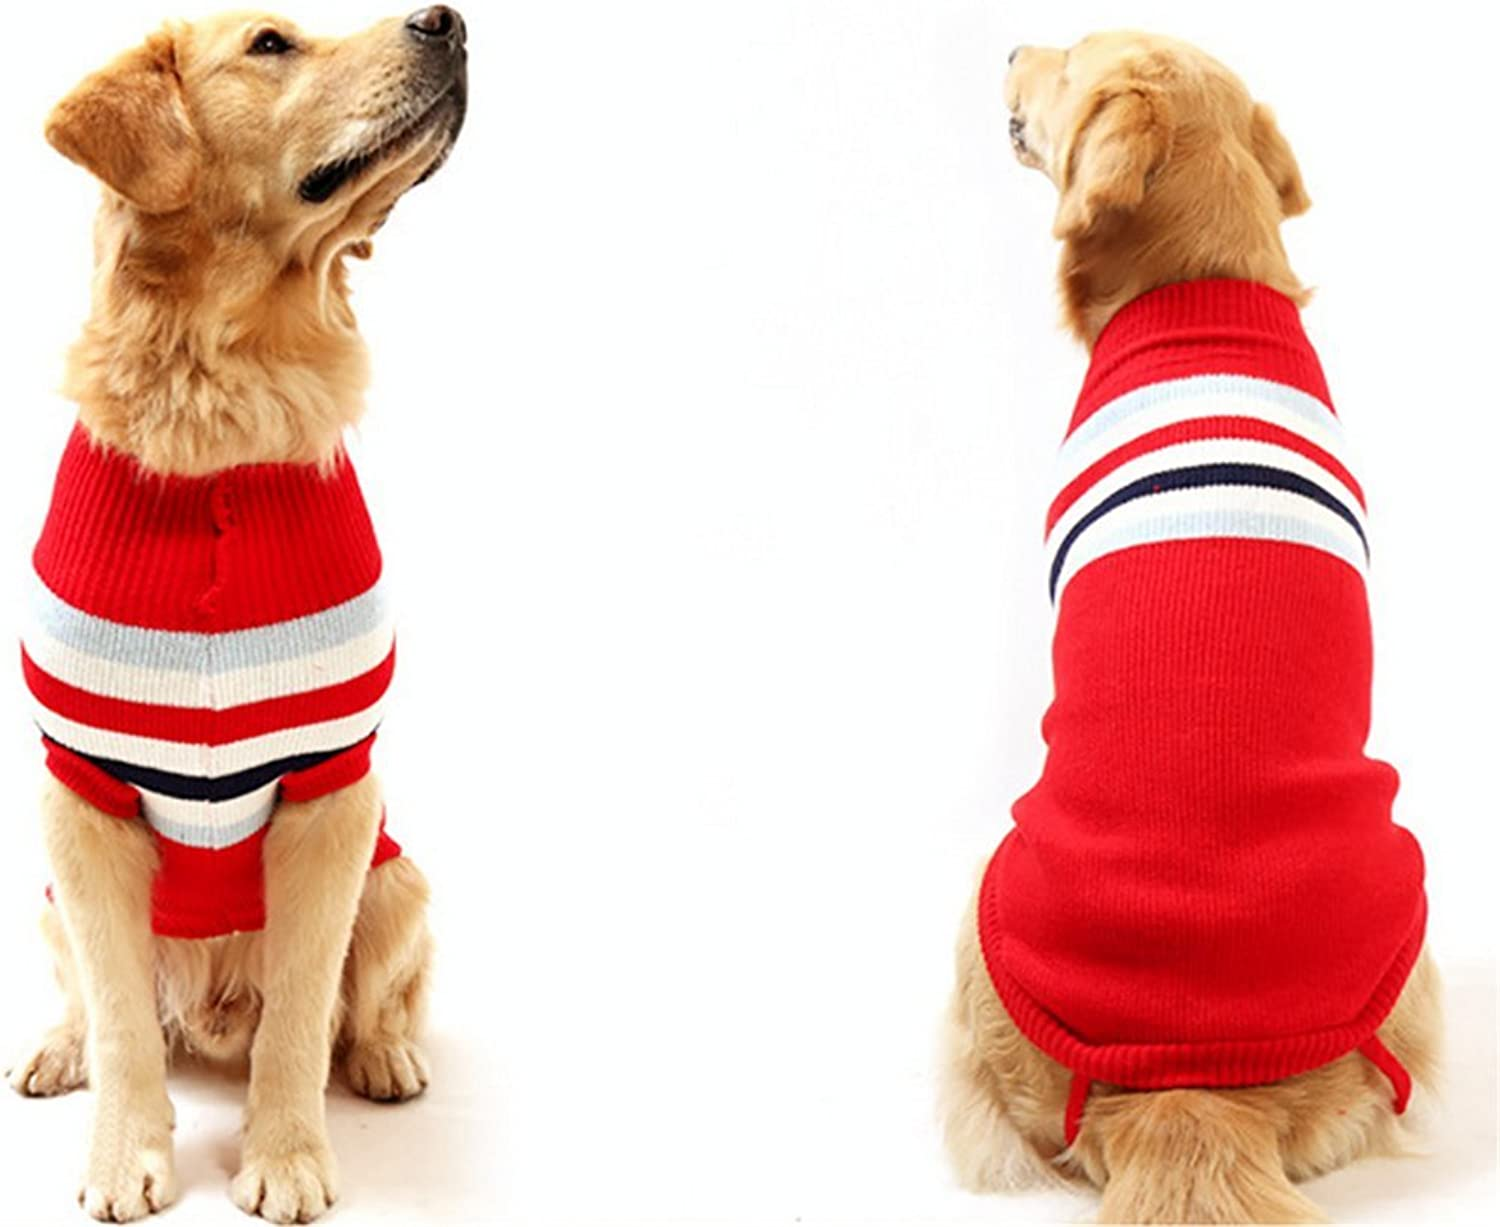 NACOCO Dog Sweater Pet Winter Sweaters Striped Holiday for Large Dog (Red, S)